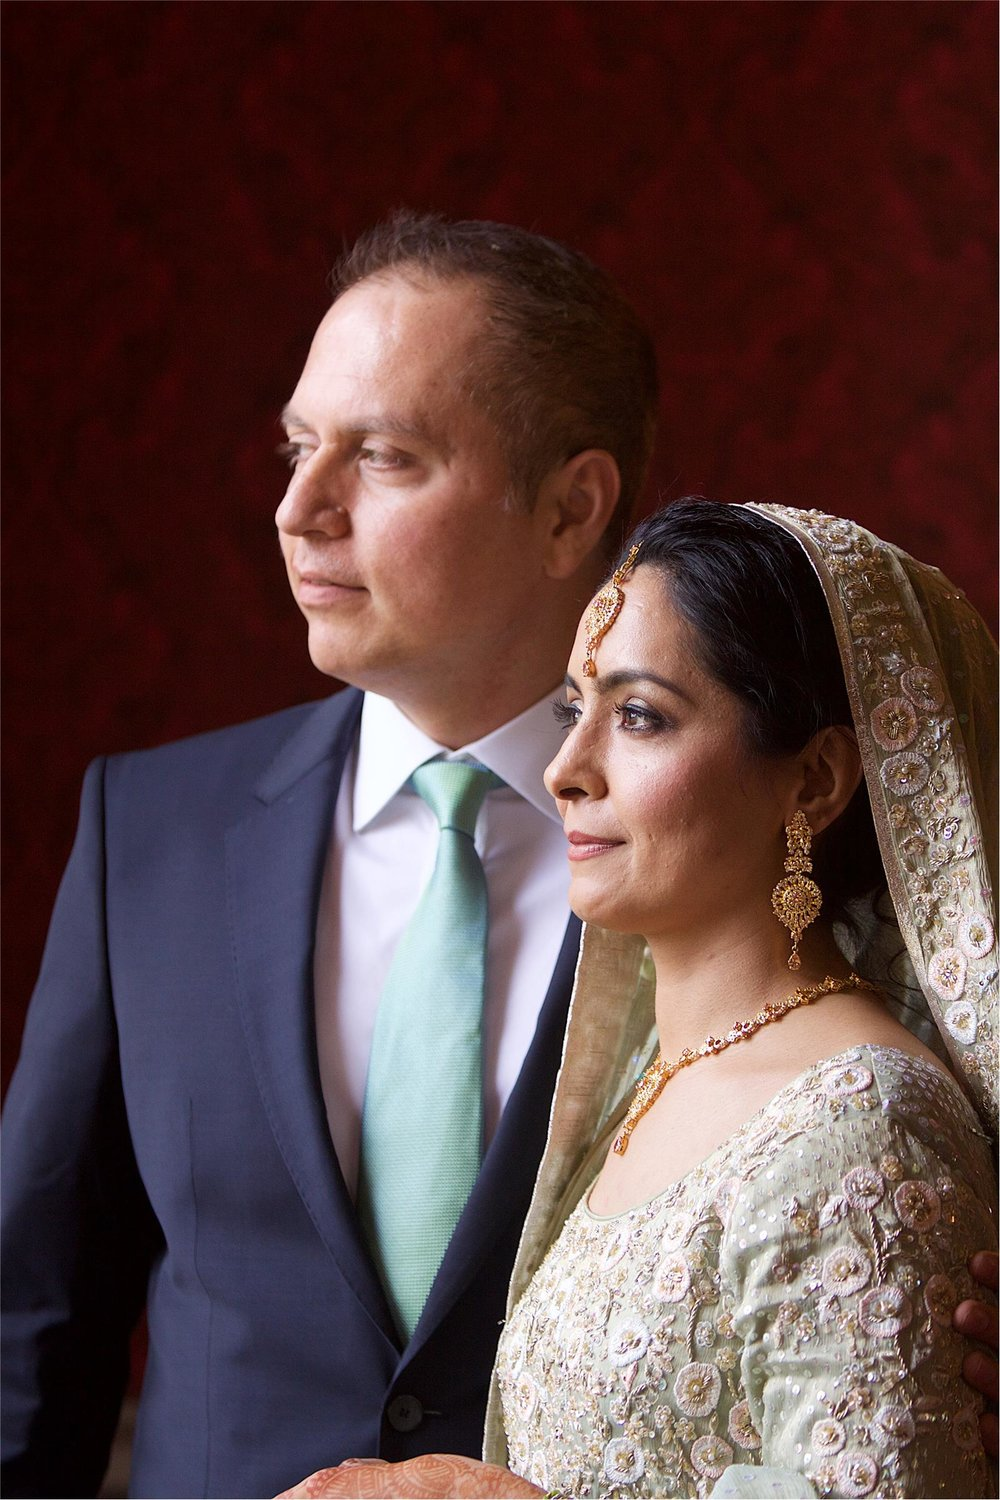 Farheen & Rizwhan at Culford School